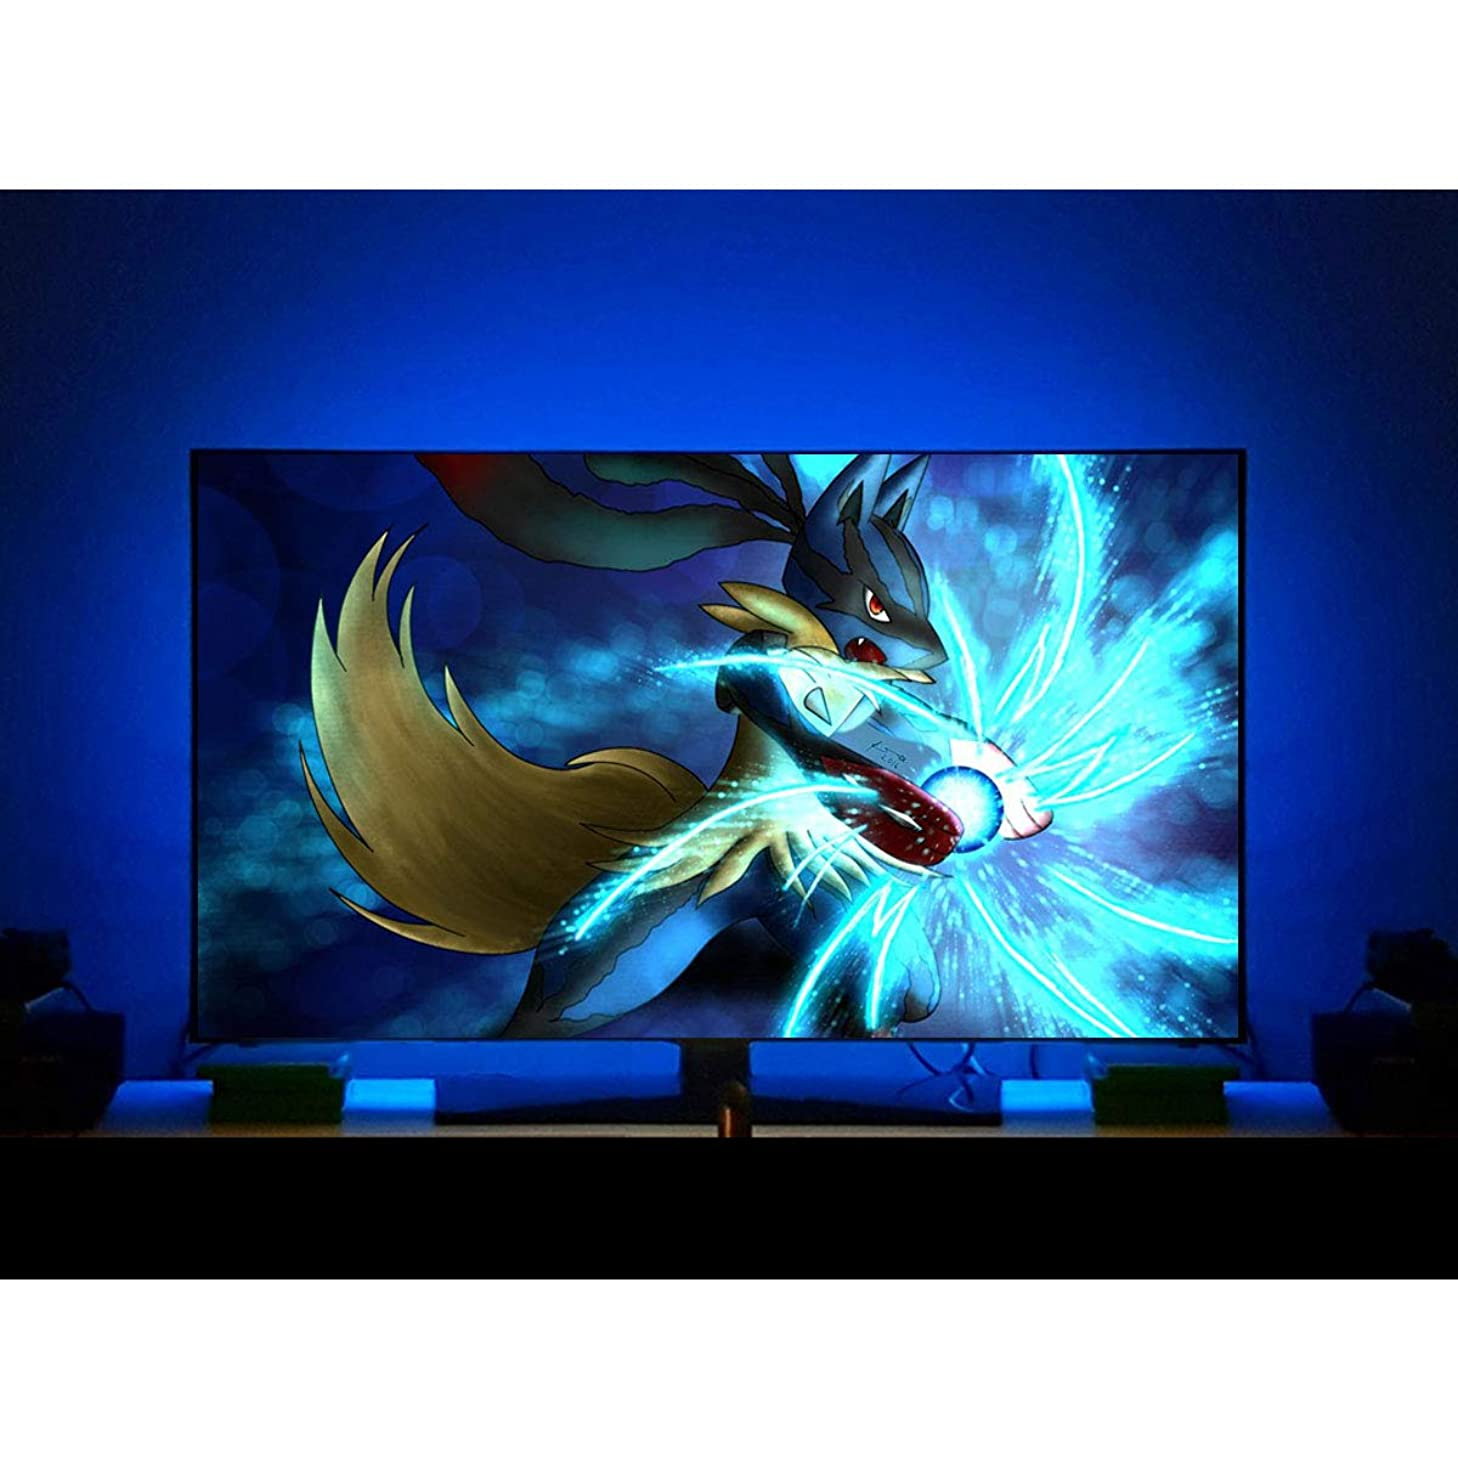 LED Backlight for 32 43 50 55 60 Inch TV Bias Lighting, USB LED Light Strip Home Theater Ambient Light, 16 Colors, 4 Dynamic Modes, 8.2 Feet